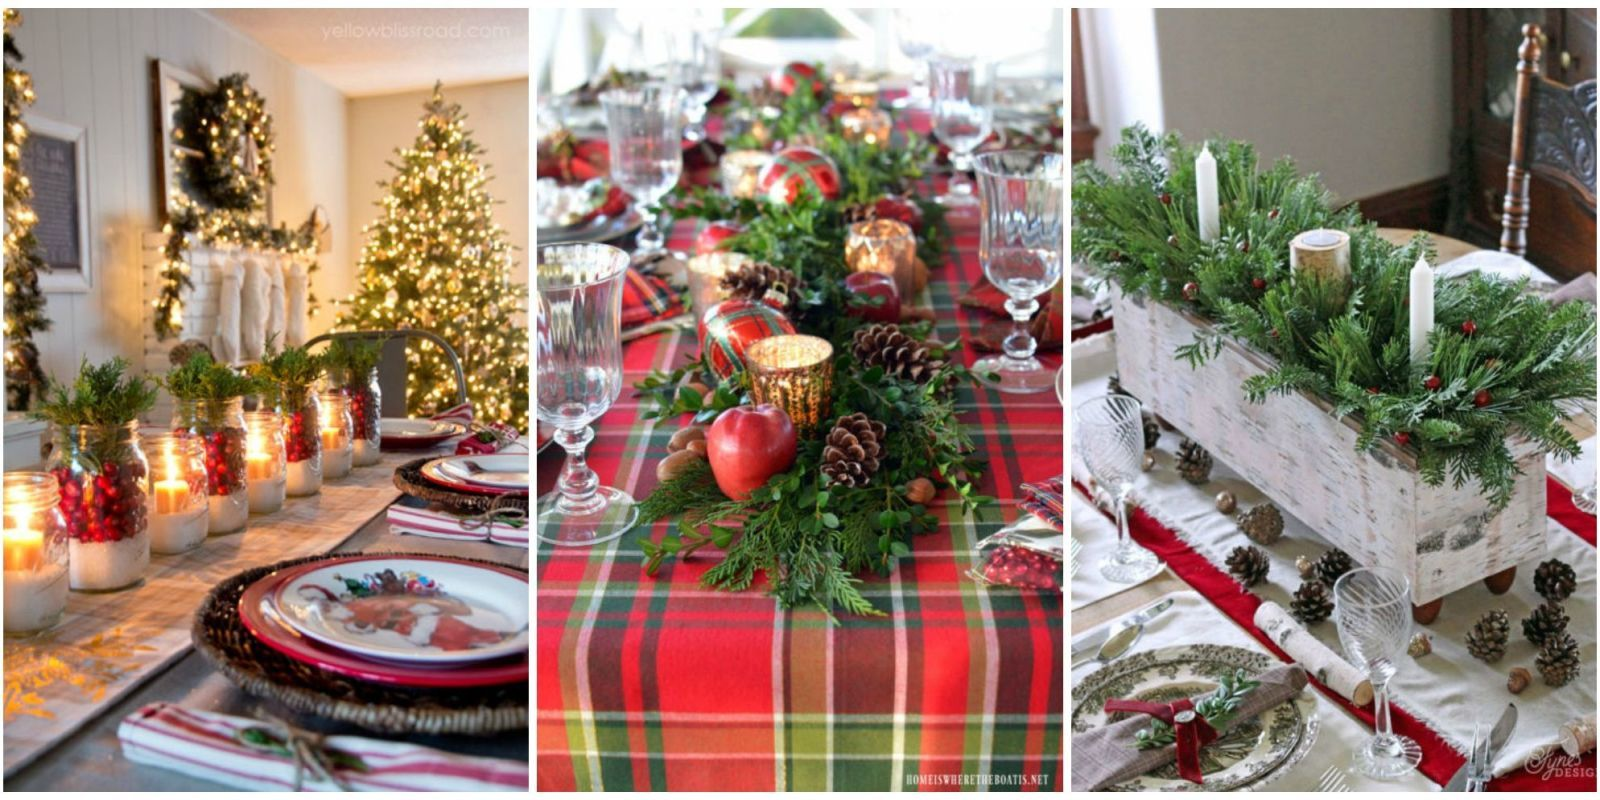 Hosting A Get Together For Family And Friends This Christmas? Get Inspired  To Make Your Holiday Table Sparkle With These Ideas For Special Decorations  And ...